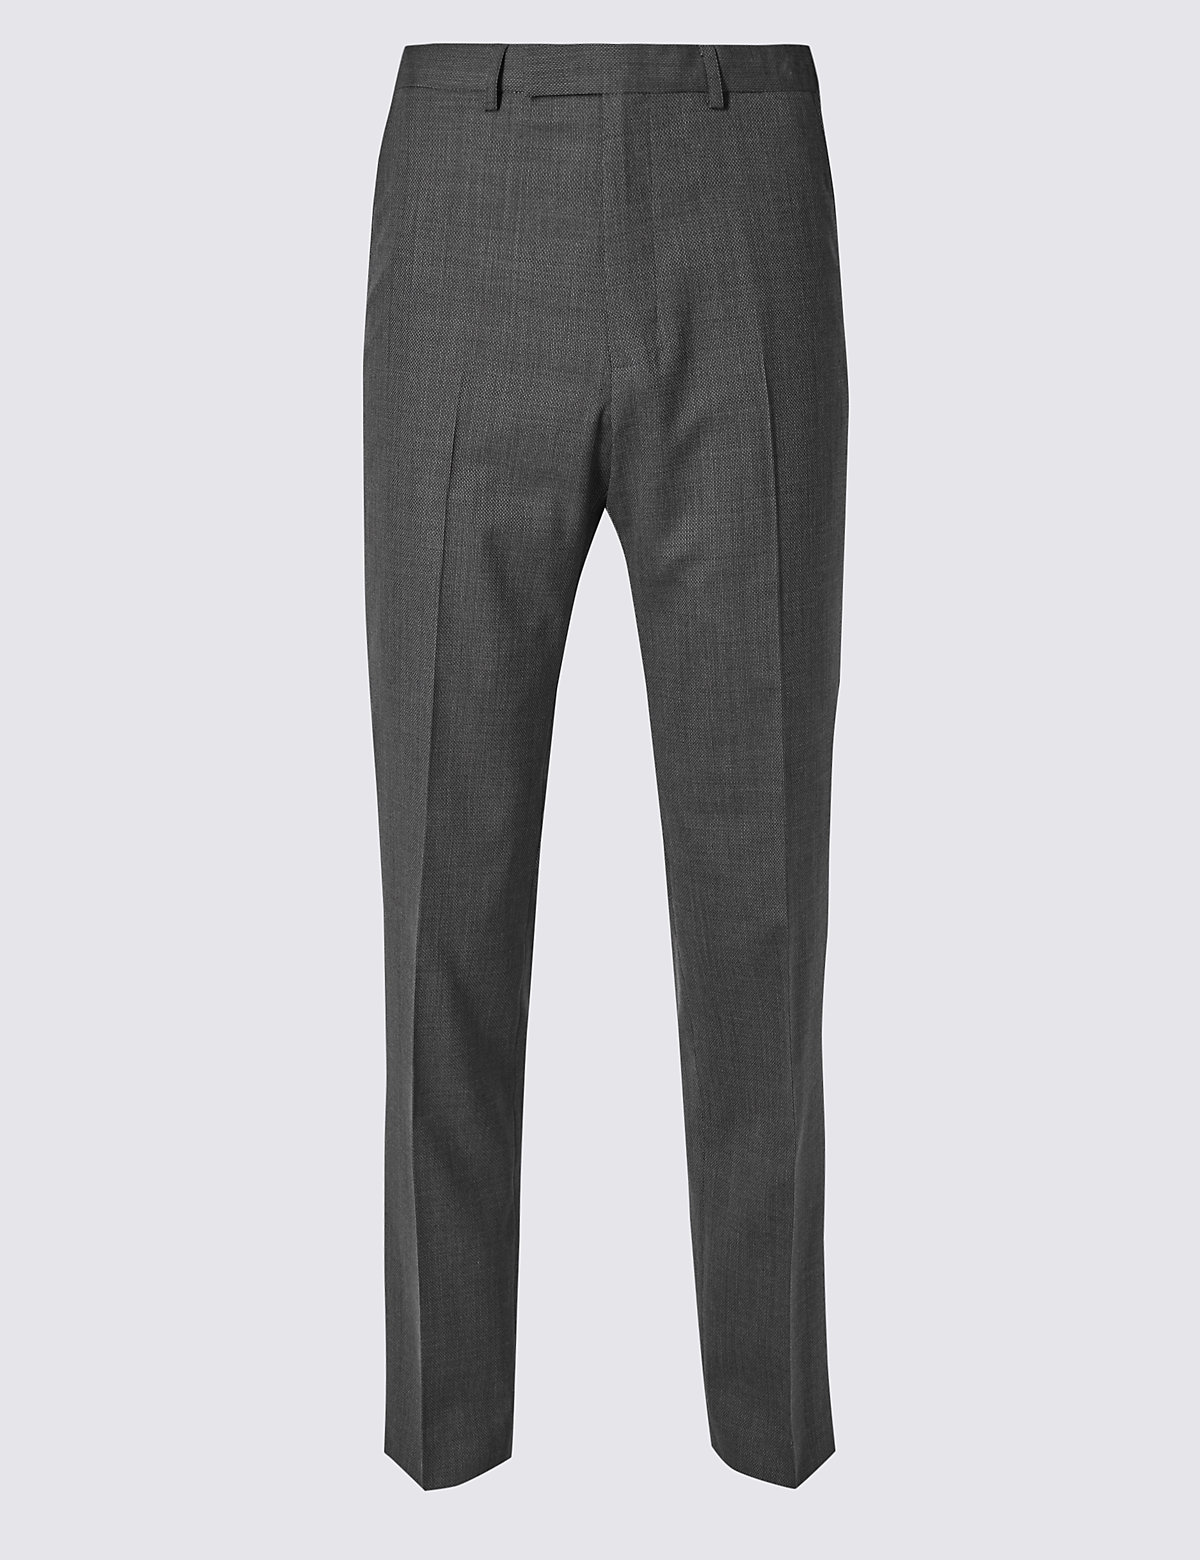 Marks & Spencer Grey Textured Slim Fit Trousers